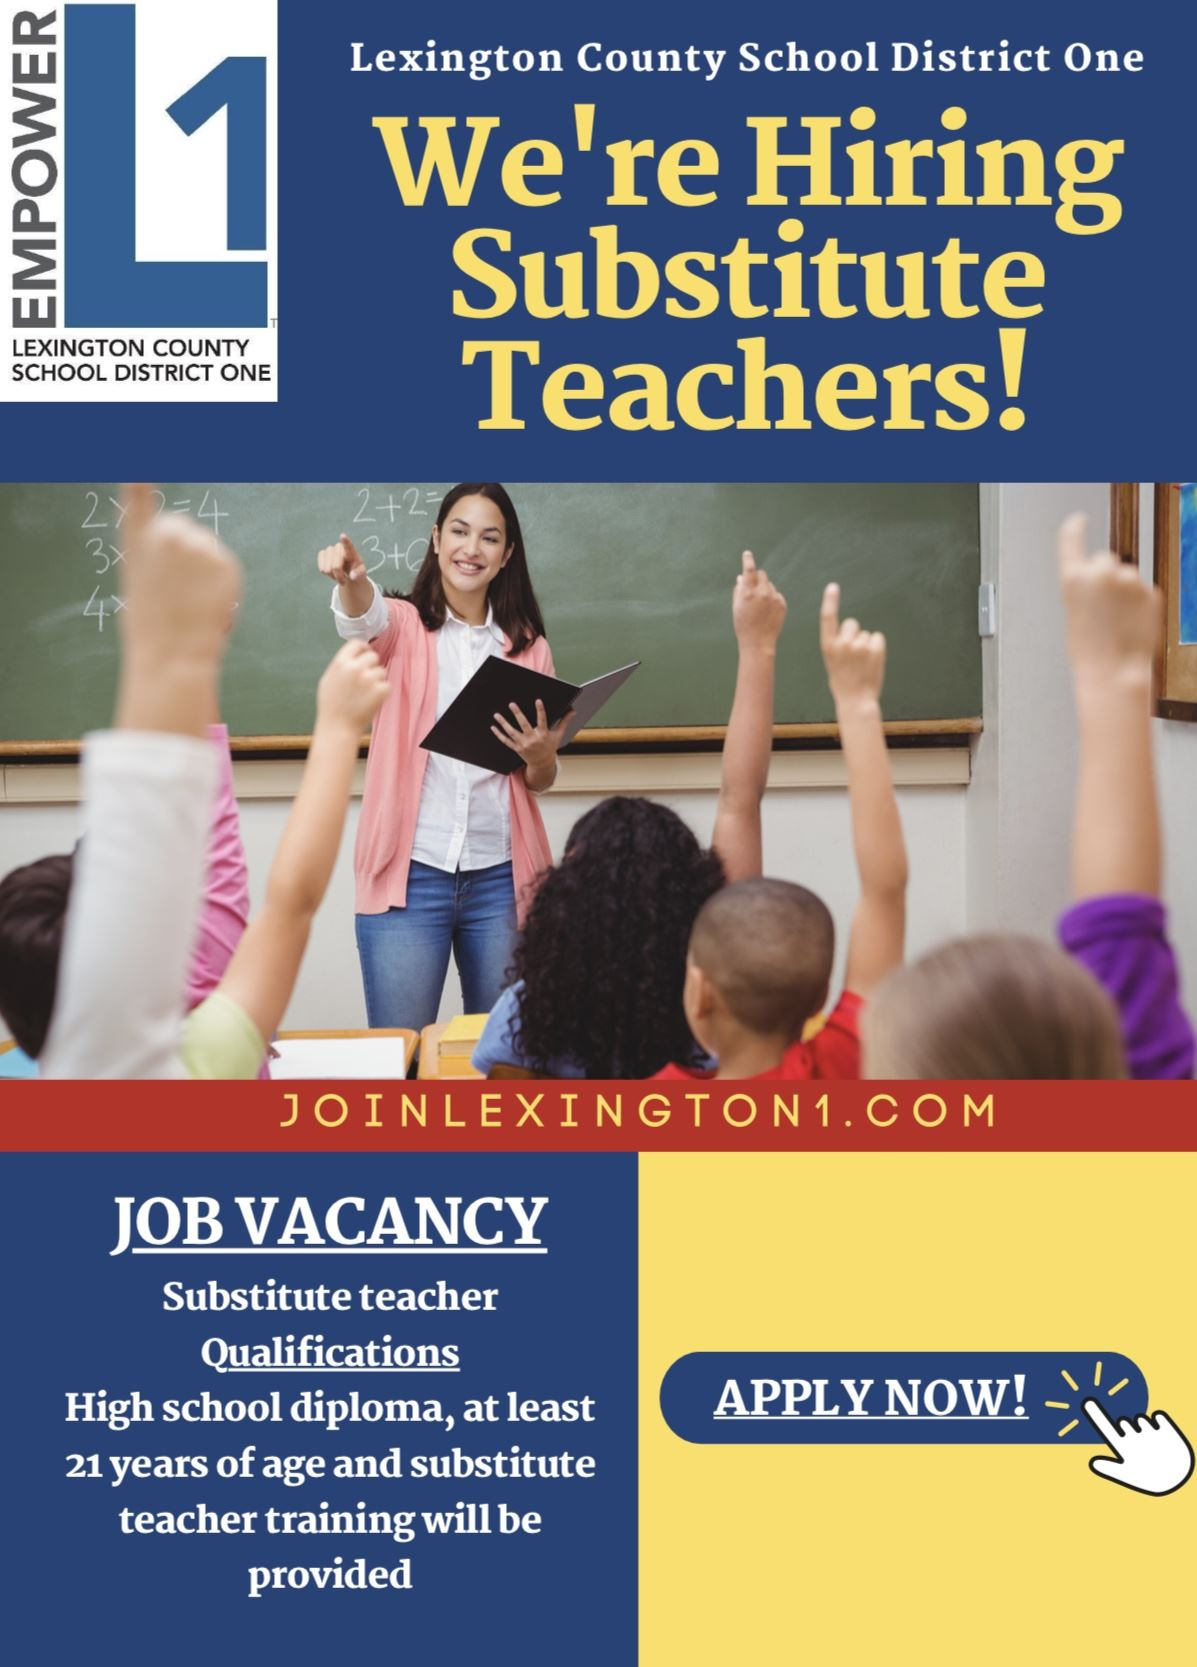 We're Hiring Substitute Teachers!